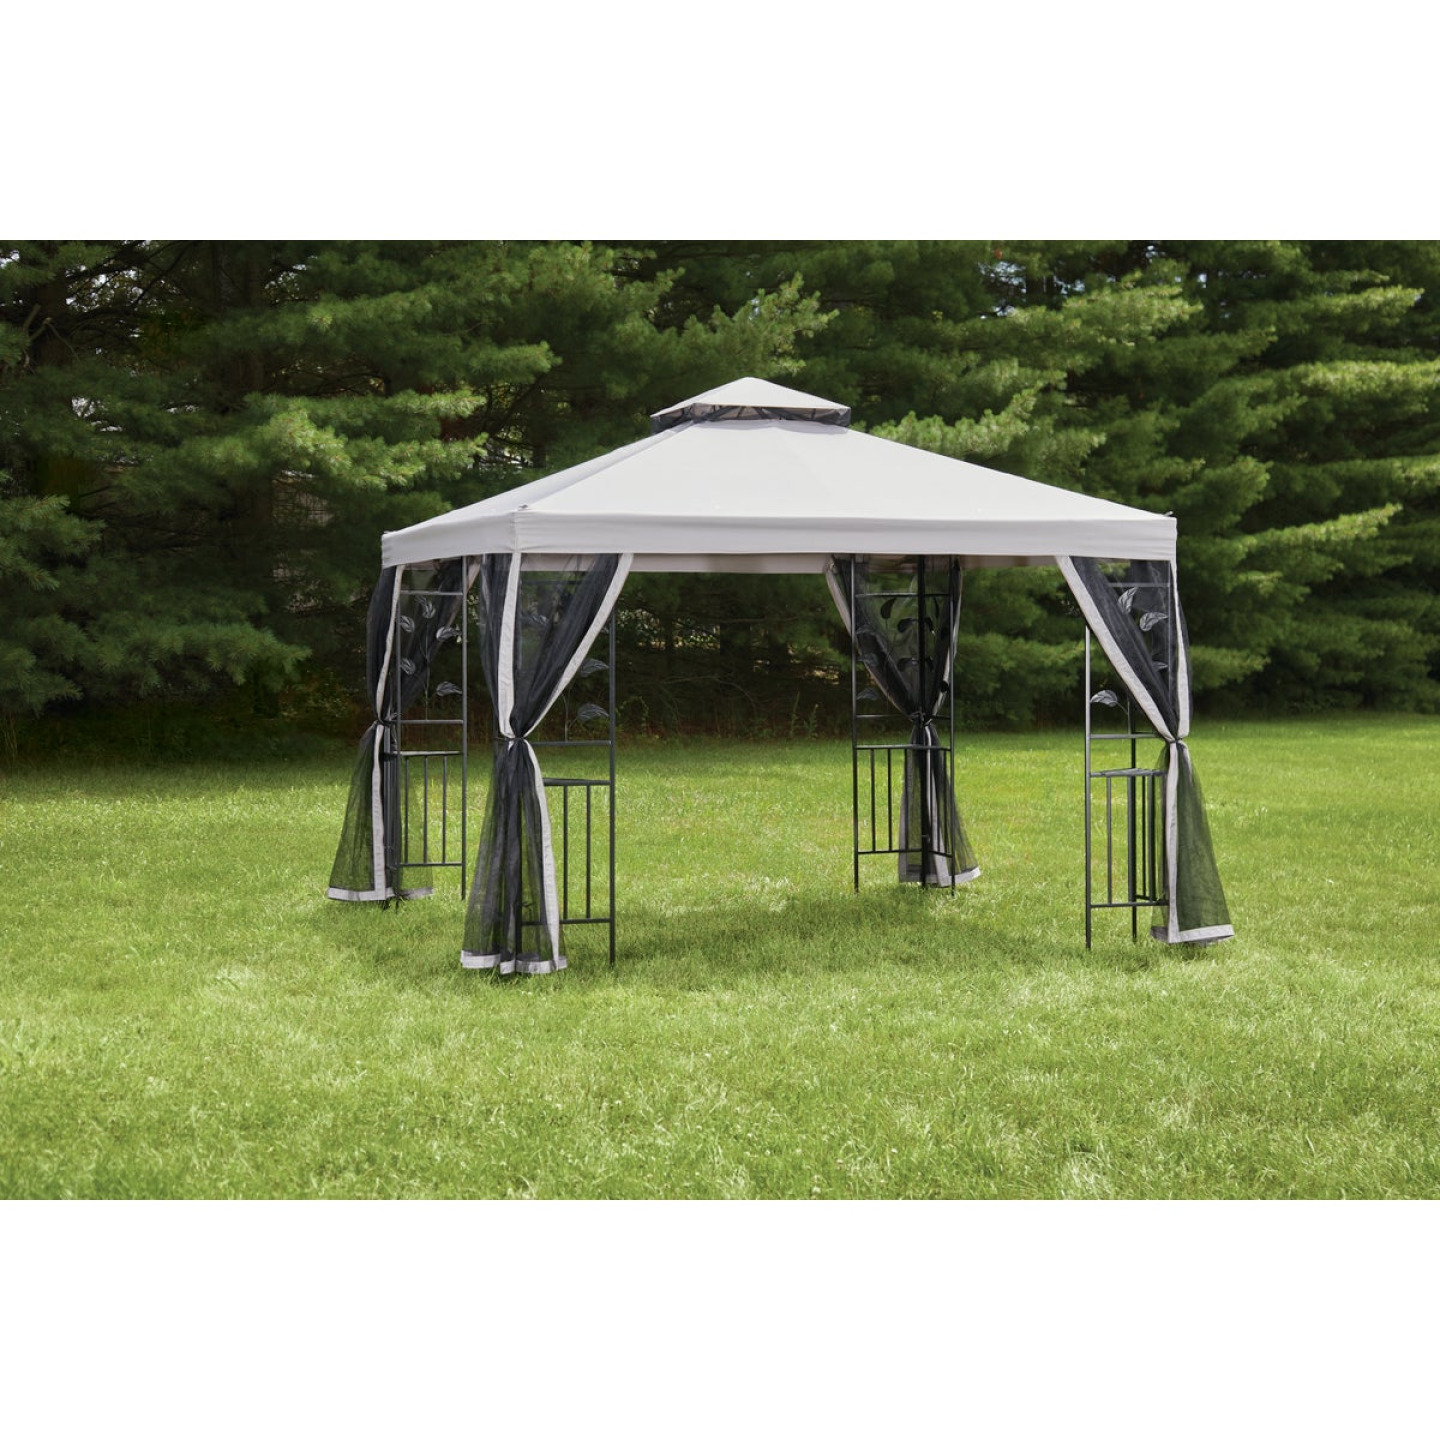 Outdoor Expressions 12 Ft. x 12 Ft. Gray & Black Steel Gazebo with Sides Image 4